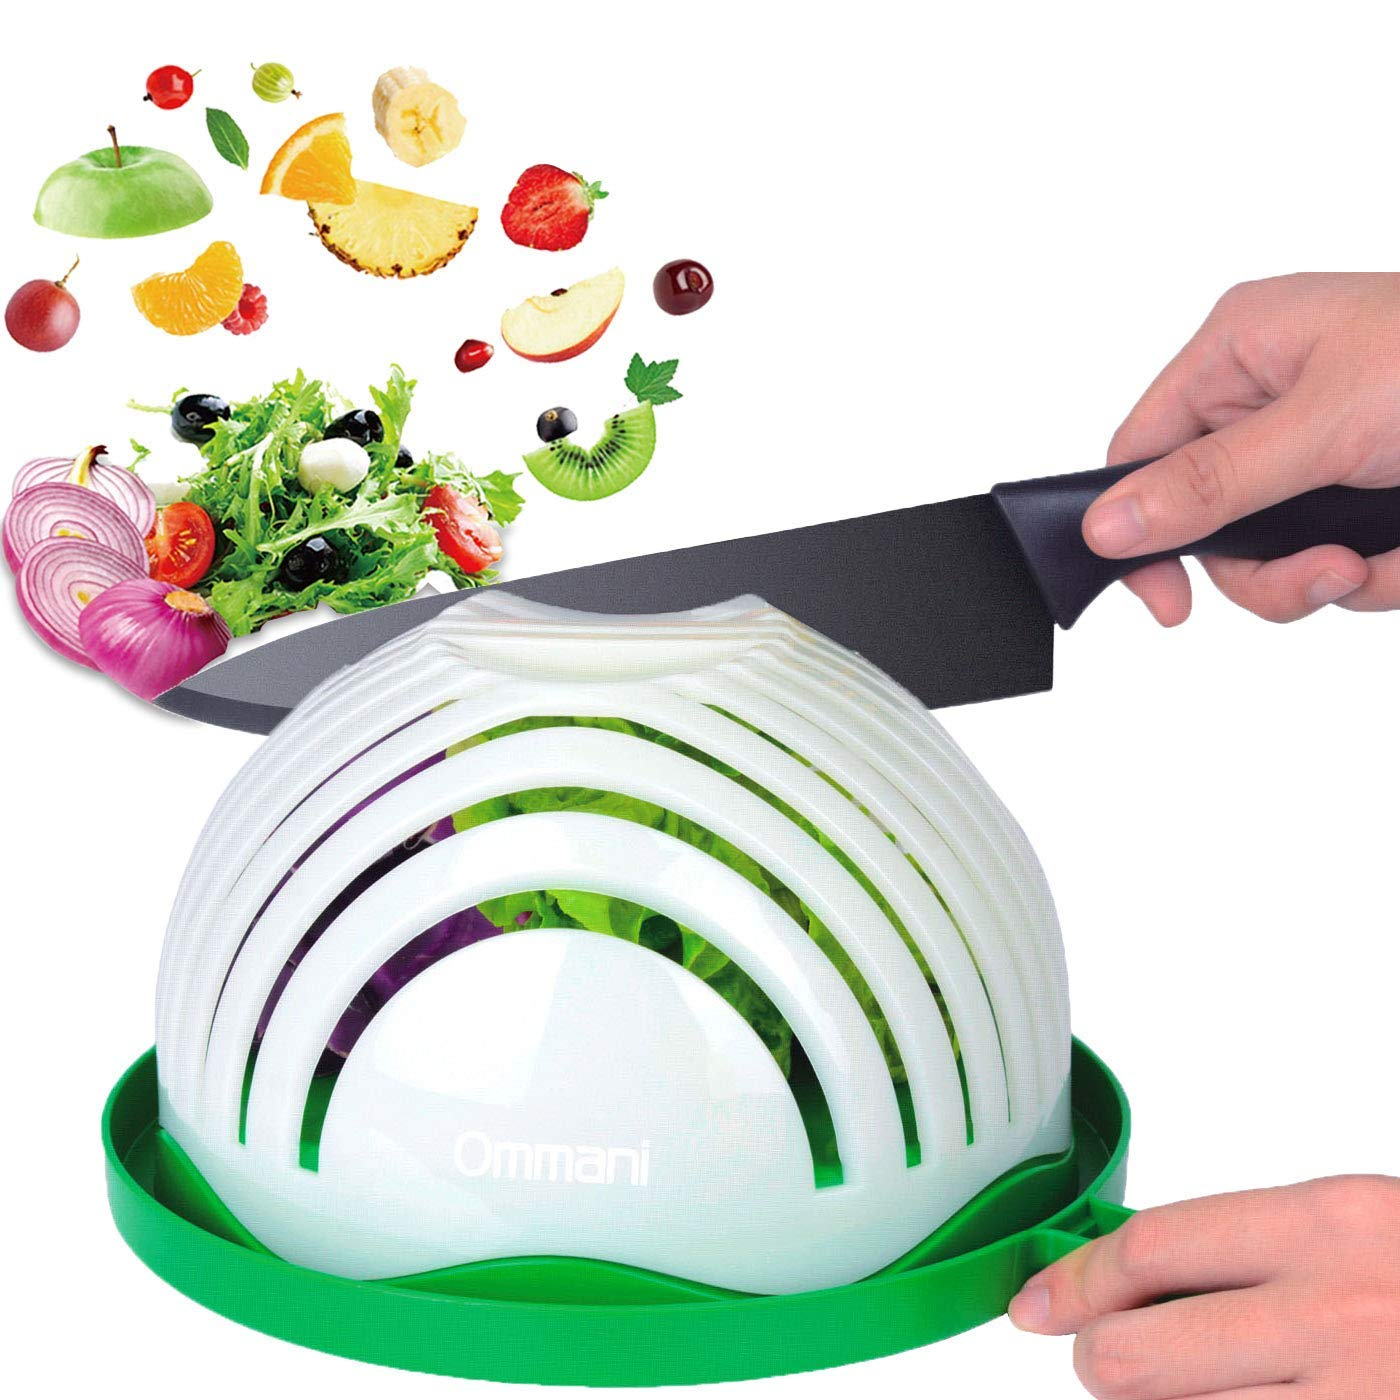 Salad Cutter Bowl, Ommani Upgraded Salad Maker Family Size Fast Vegetable Cutter Bowl, Salad Slicer Salad Chopper Strainer Cutting Board 4 in 1 Durable FDA-Approved for Kitchen by Ommani